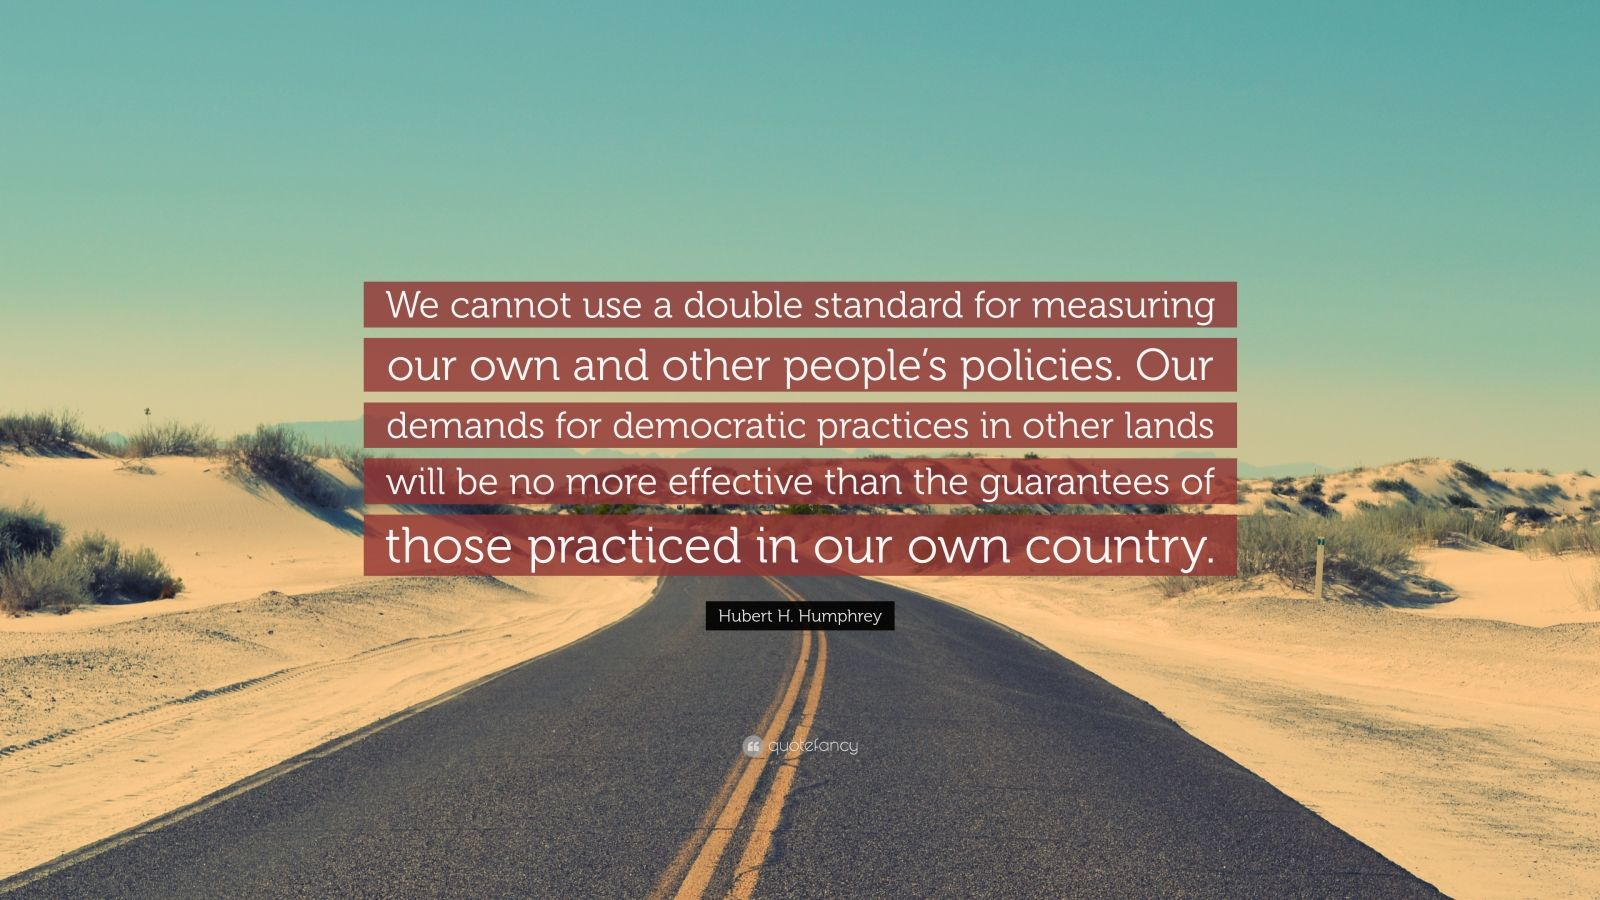 "Hubert H. Humphrey Quote: ""We cannot use a double standard for measuring our own and other people's policies. Our demands for democratic practices in other lands will be no more effective than the guarantees of those practiced in our own country."""